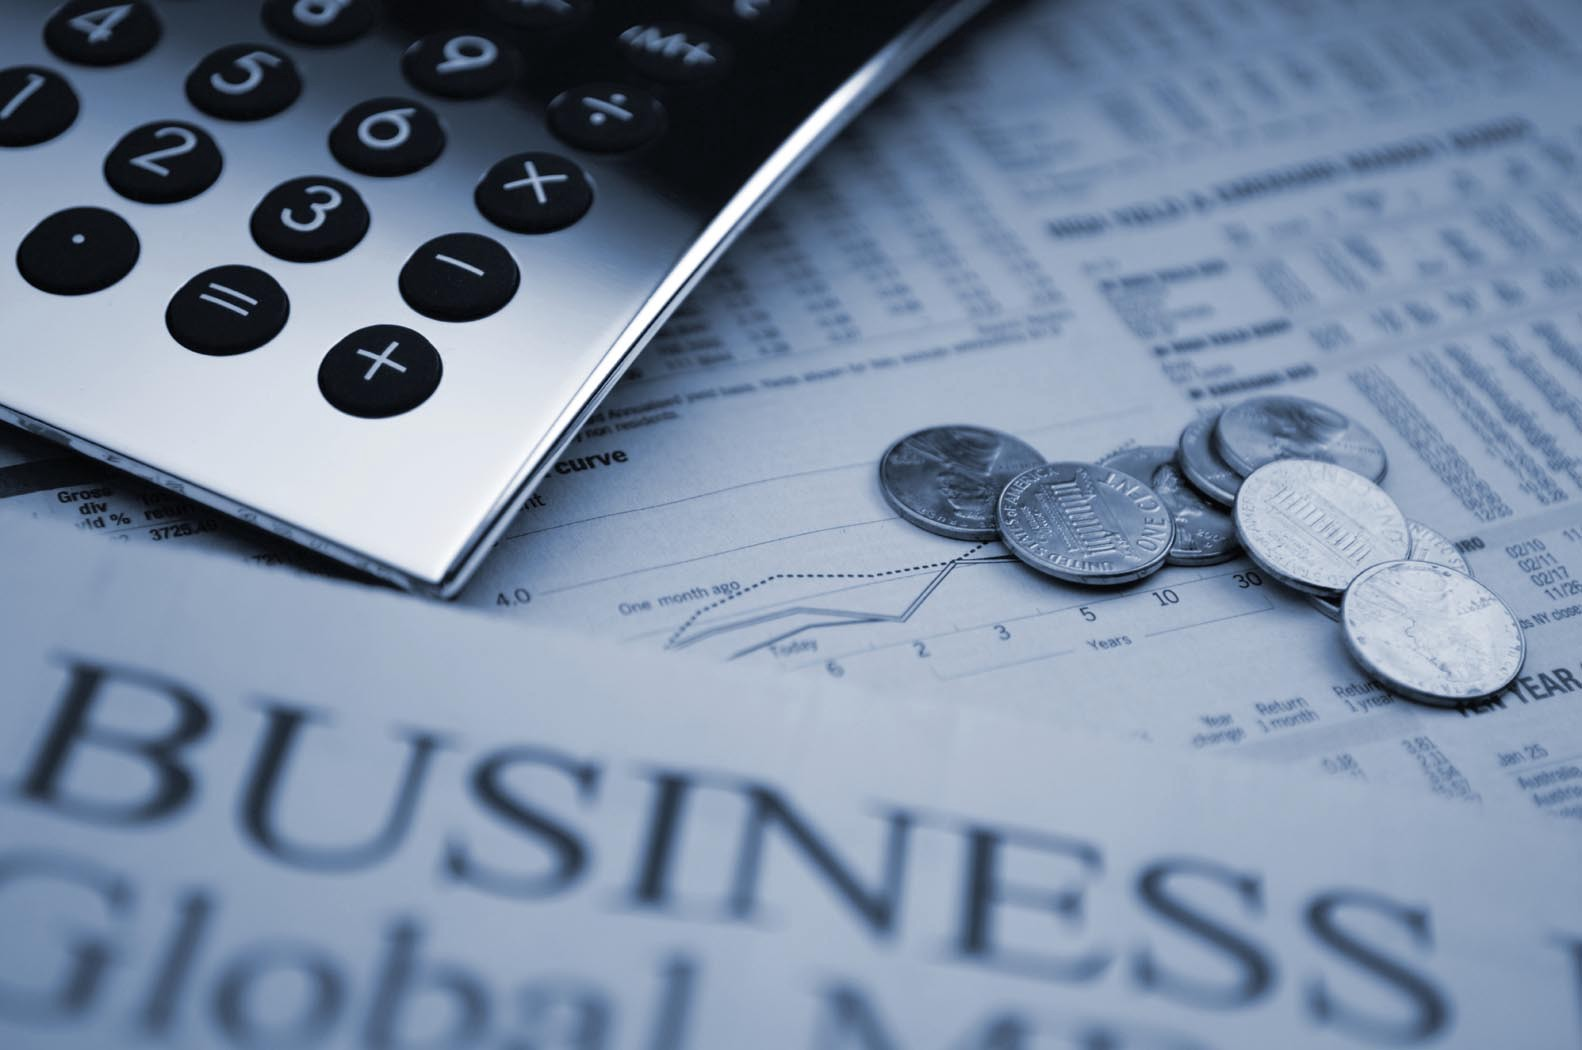 The Best Ways to Raise Funds for Business